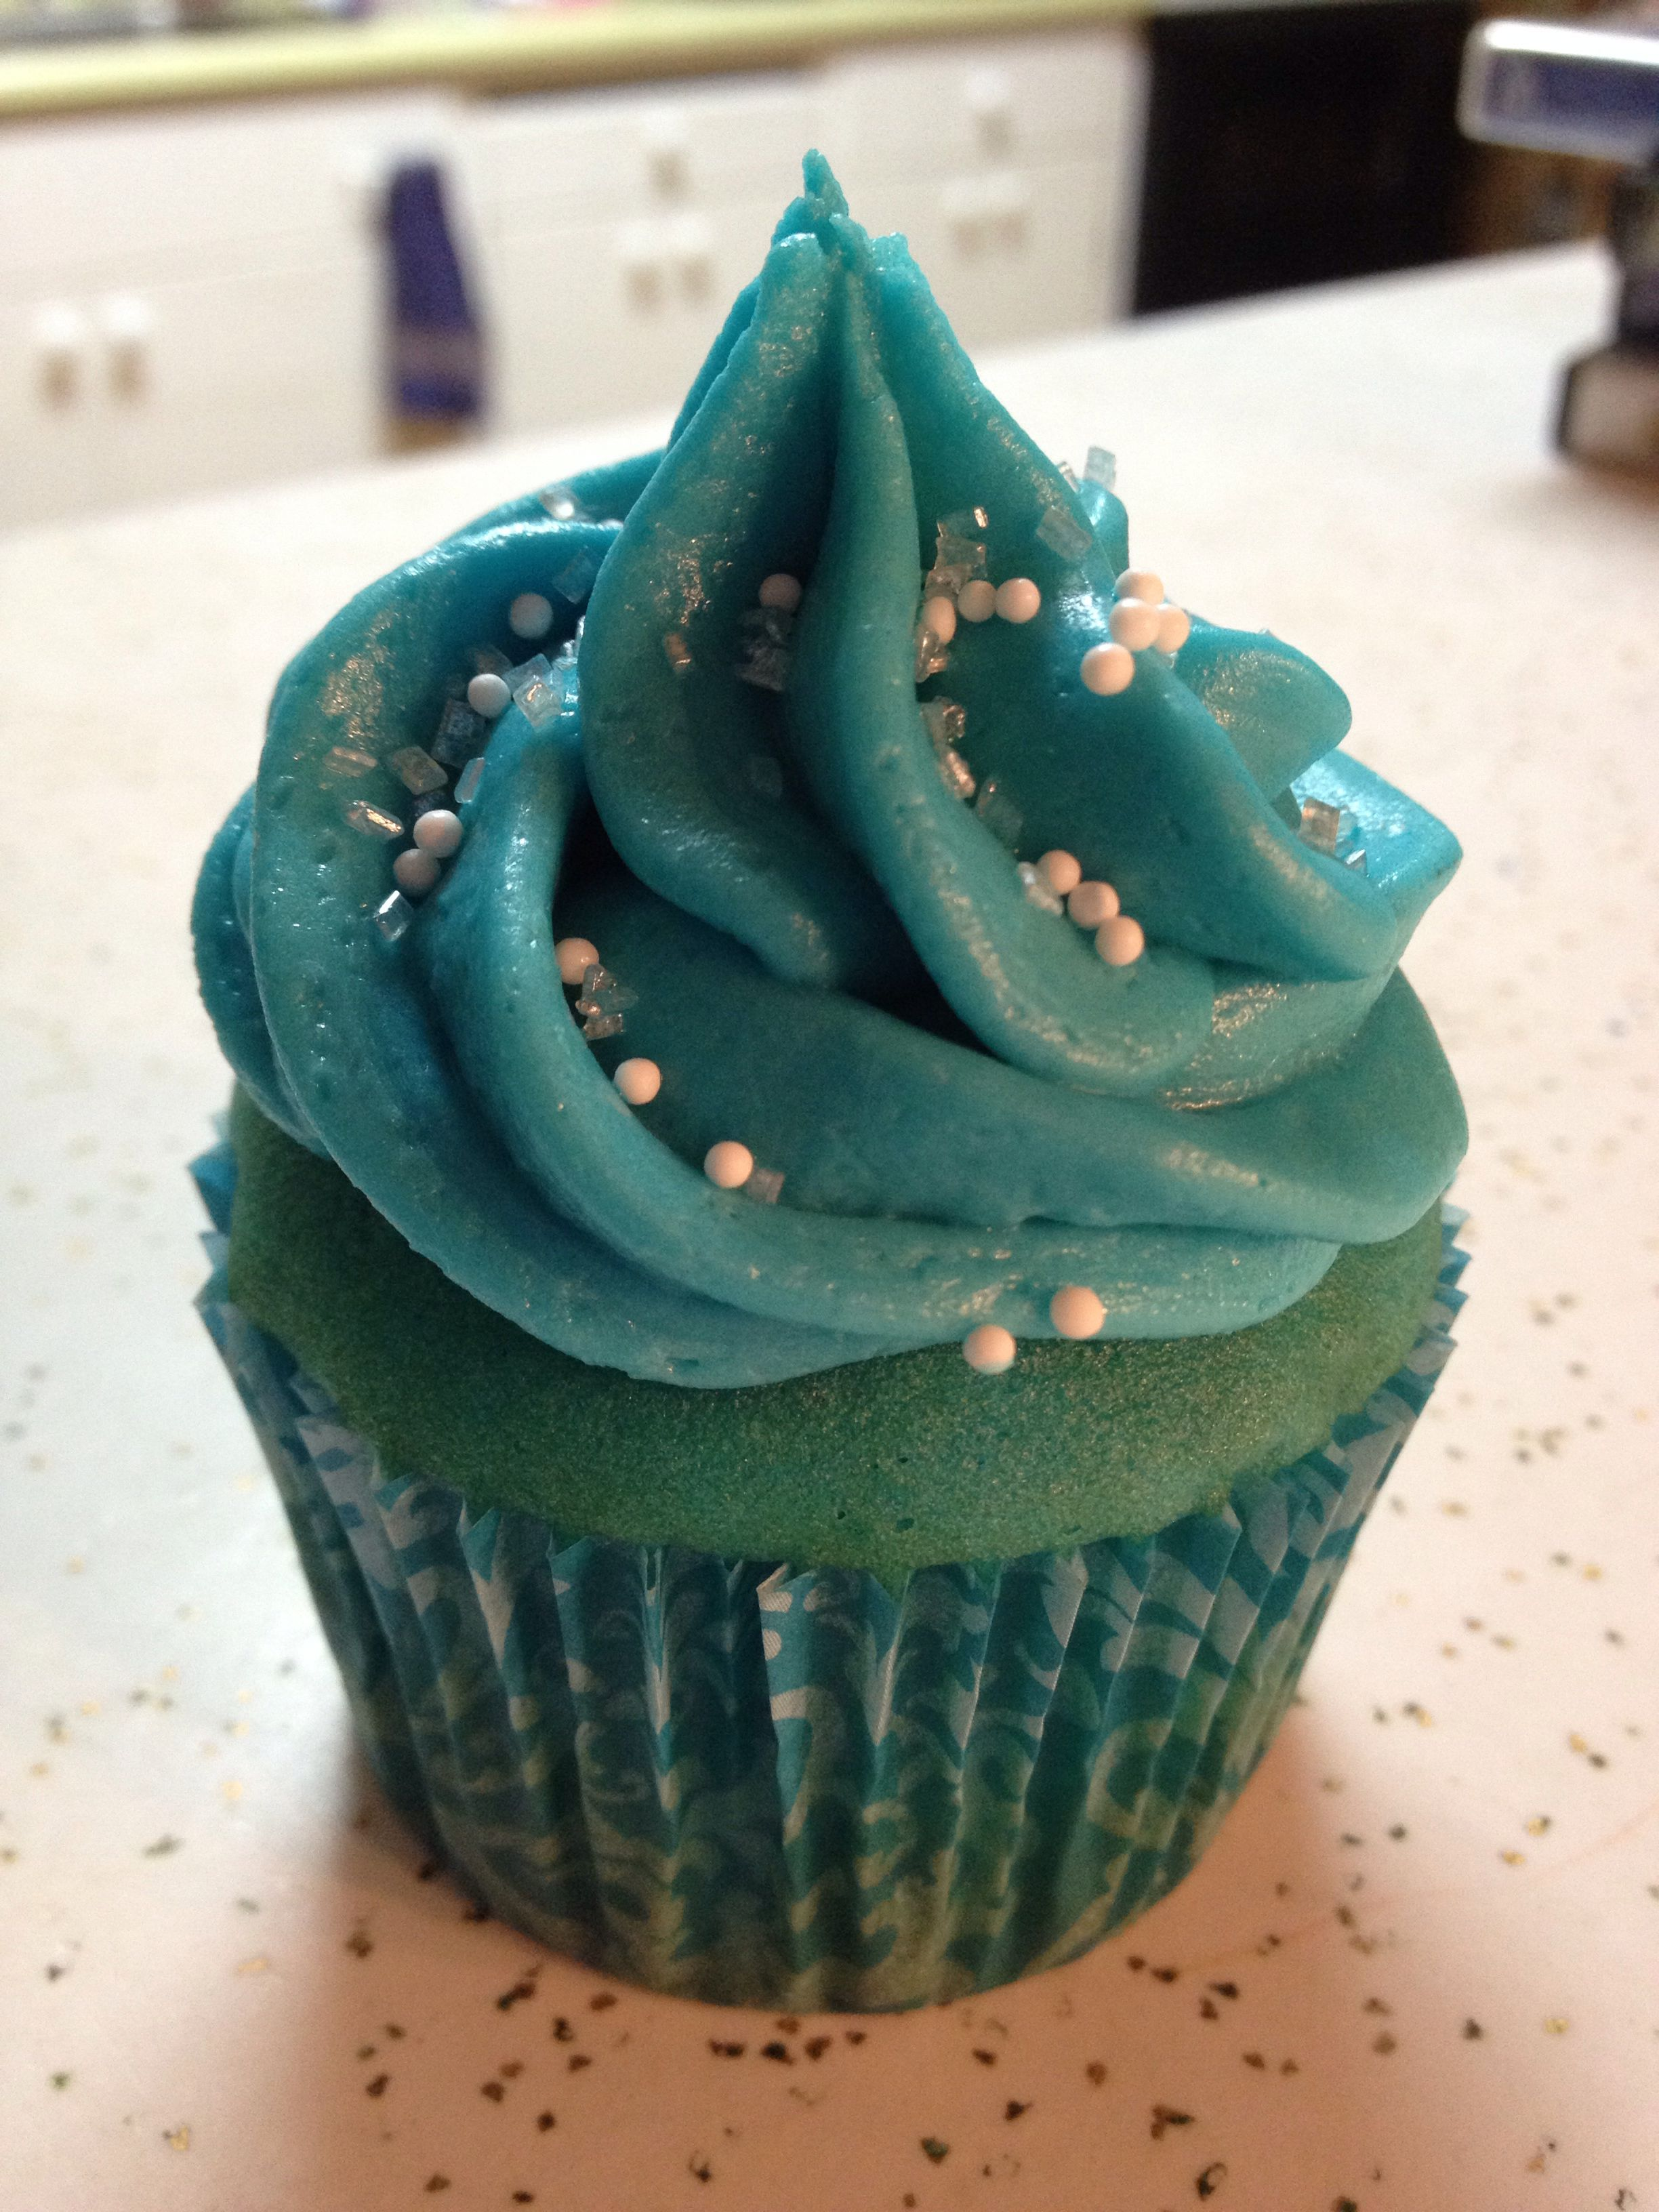 Frozen inspired cupcakes